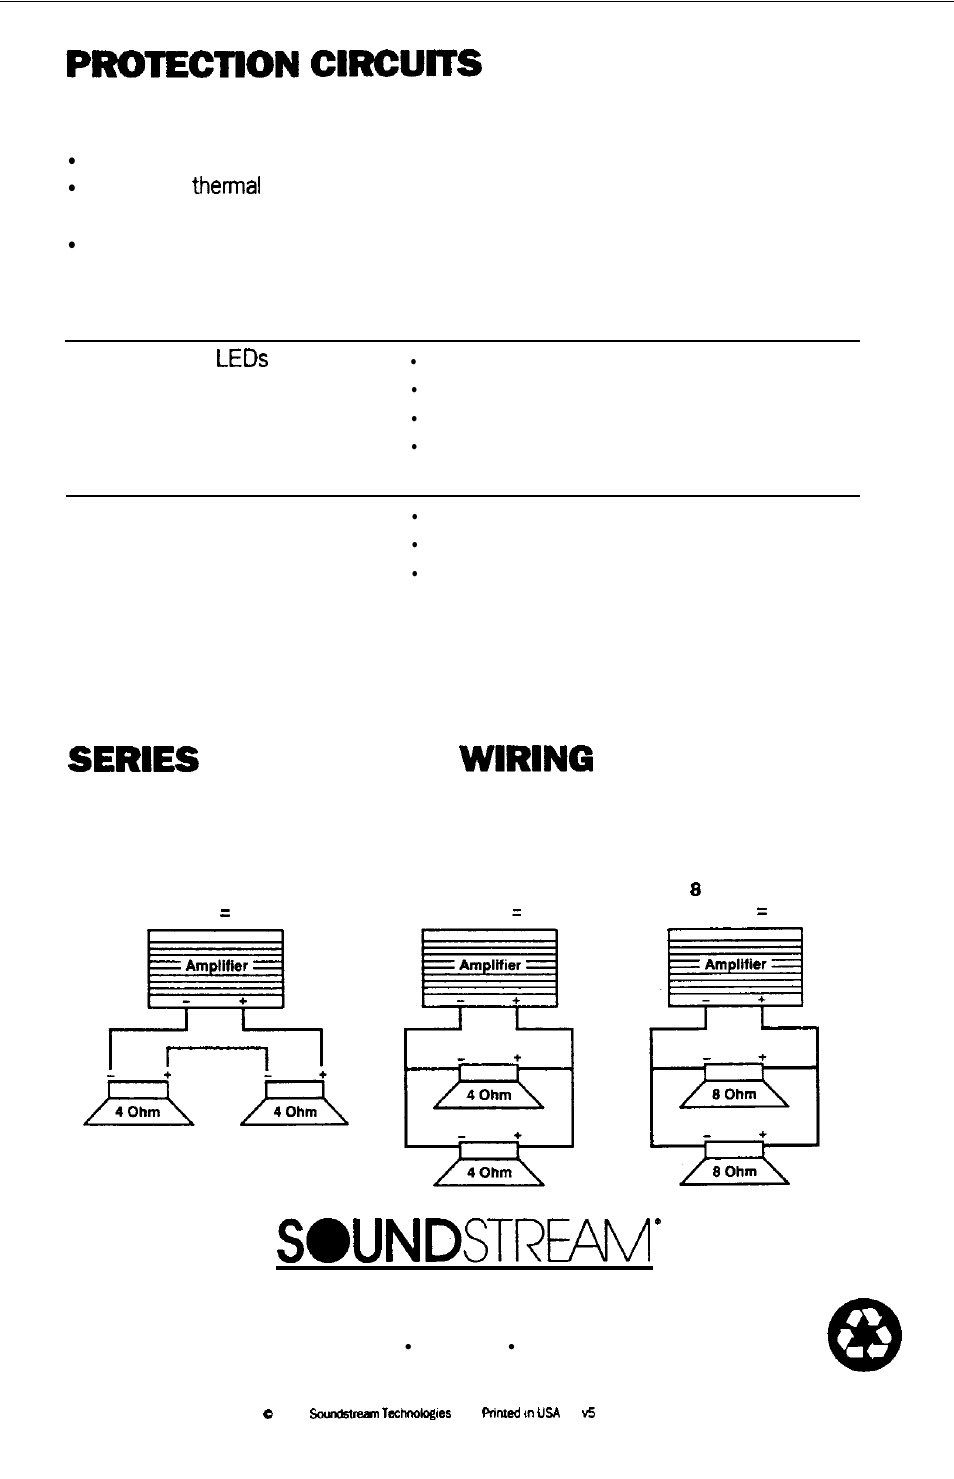 Troubleshooting Service Parallel Diagrams See Soundstream Thermal Protector Wiring Diagram Technologies Granite 1204 User Manual Page 20